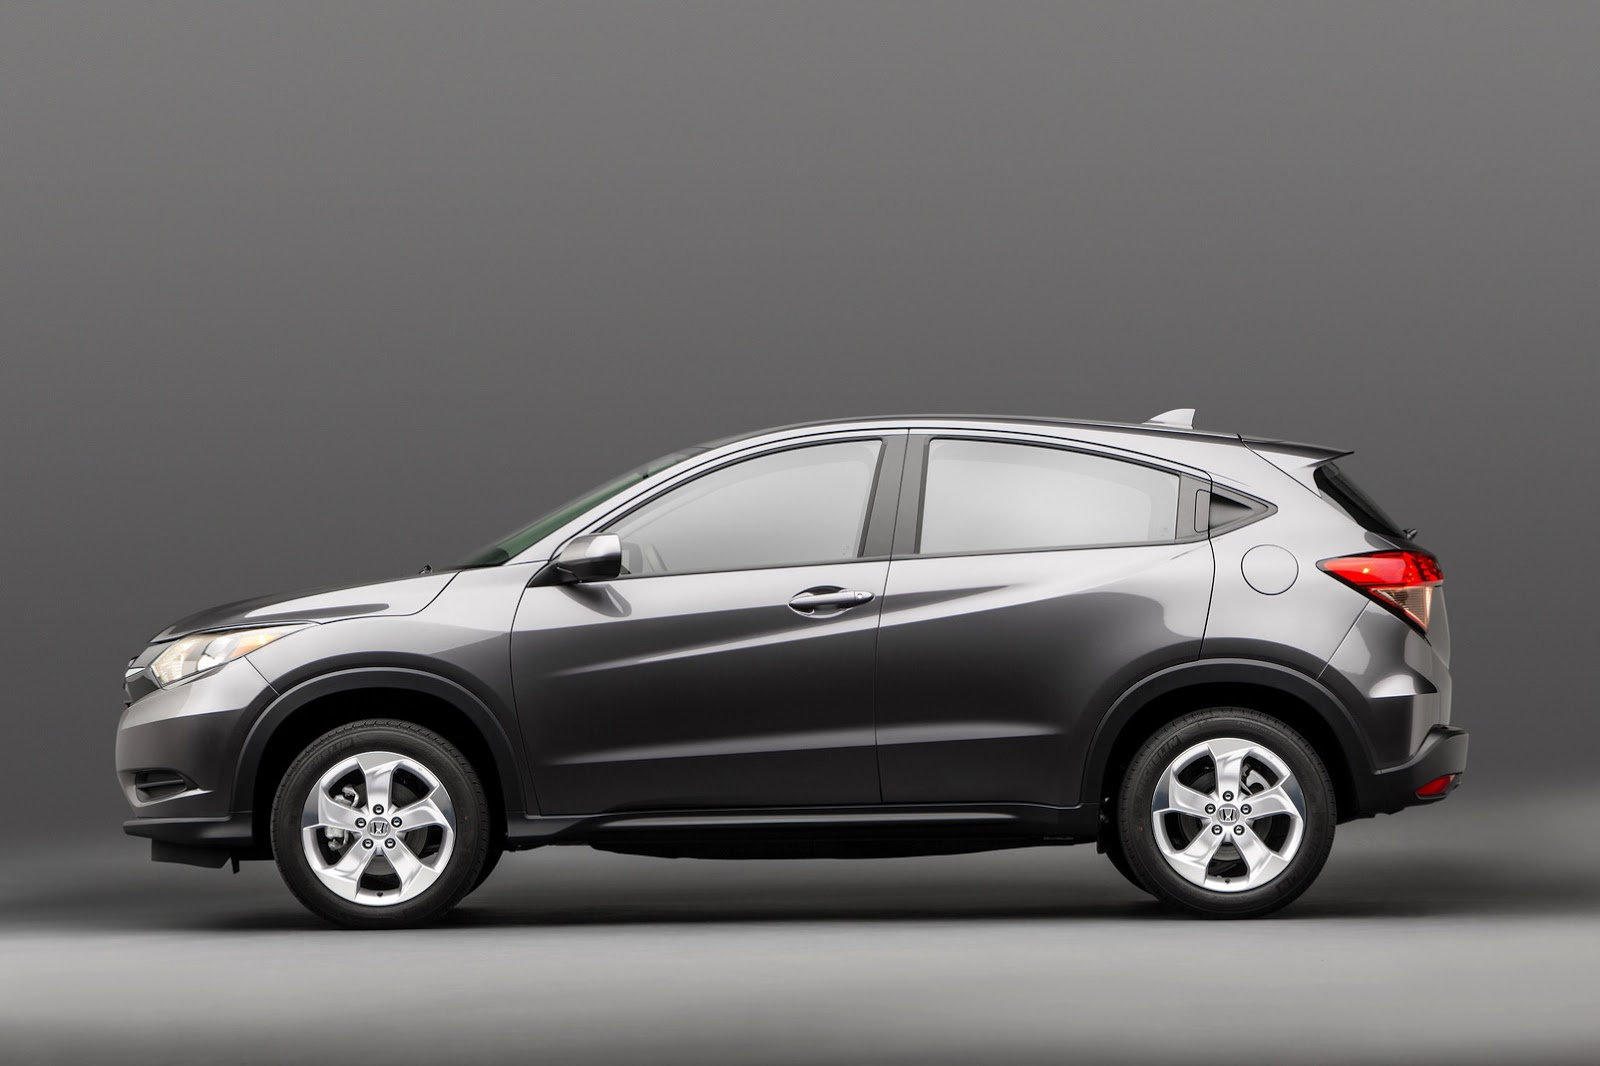 north america this is your 2016 honda hr v small crossover. Black Bedroom Furniture Sets. Home Design Ideas